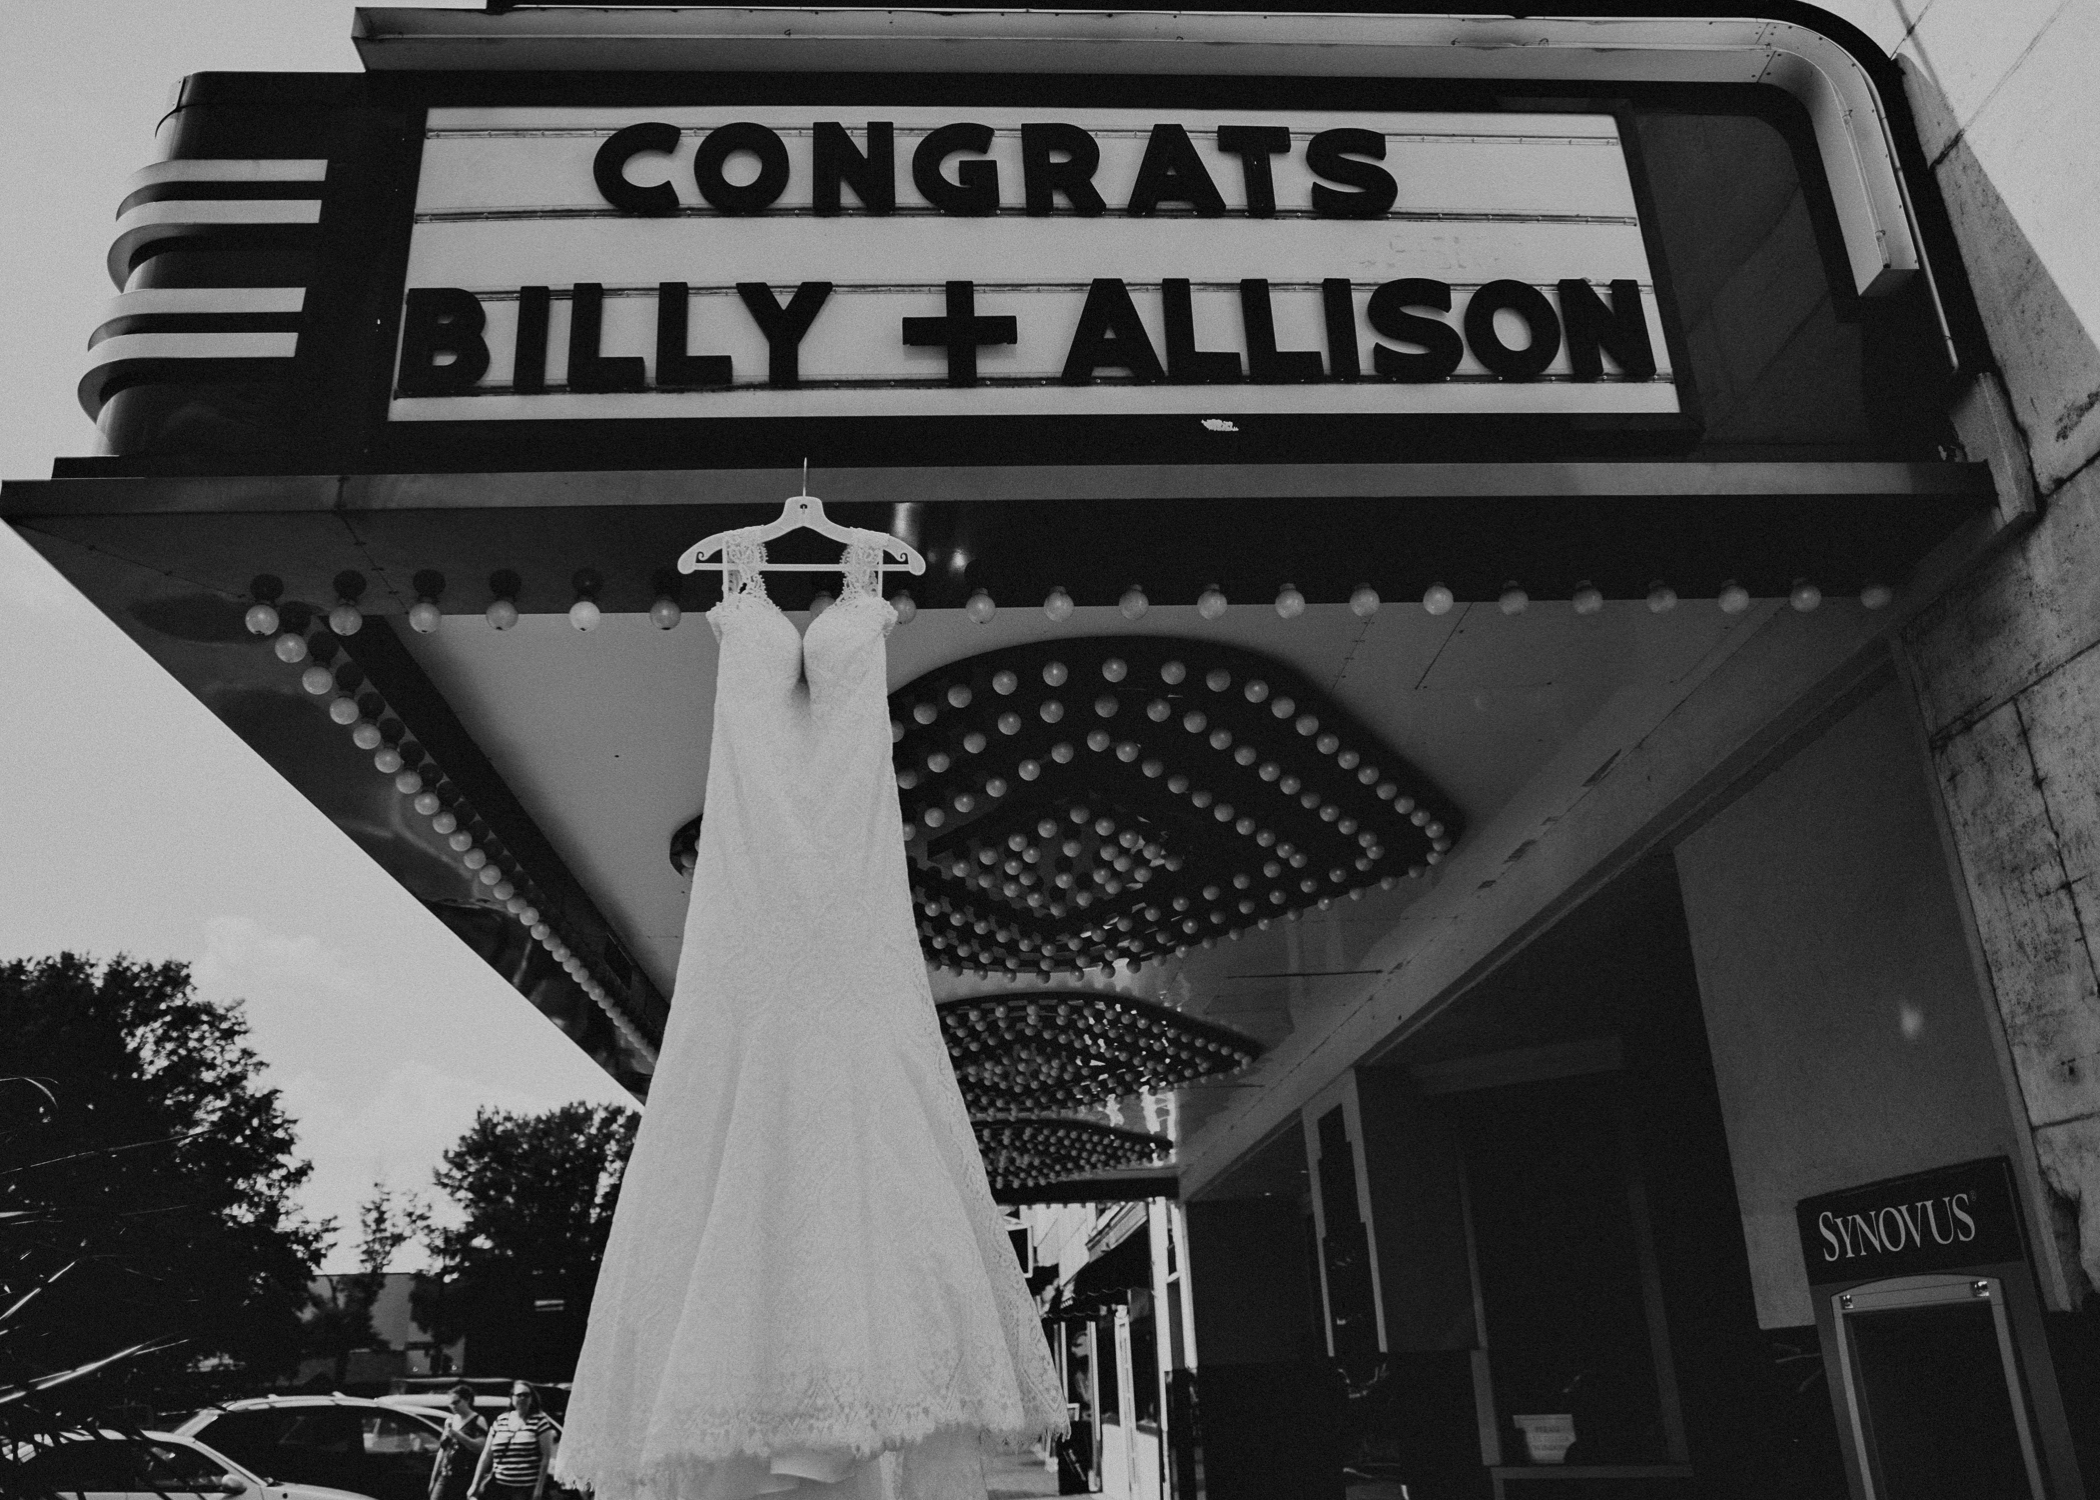 Allison and Billy - earlsmithstrand_marietta square georgia wedding photography-1.jpg